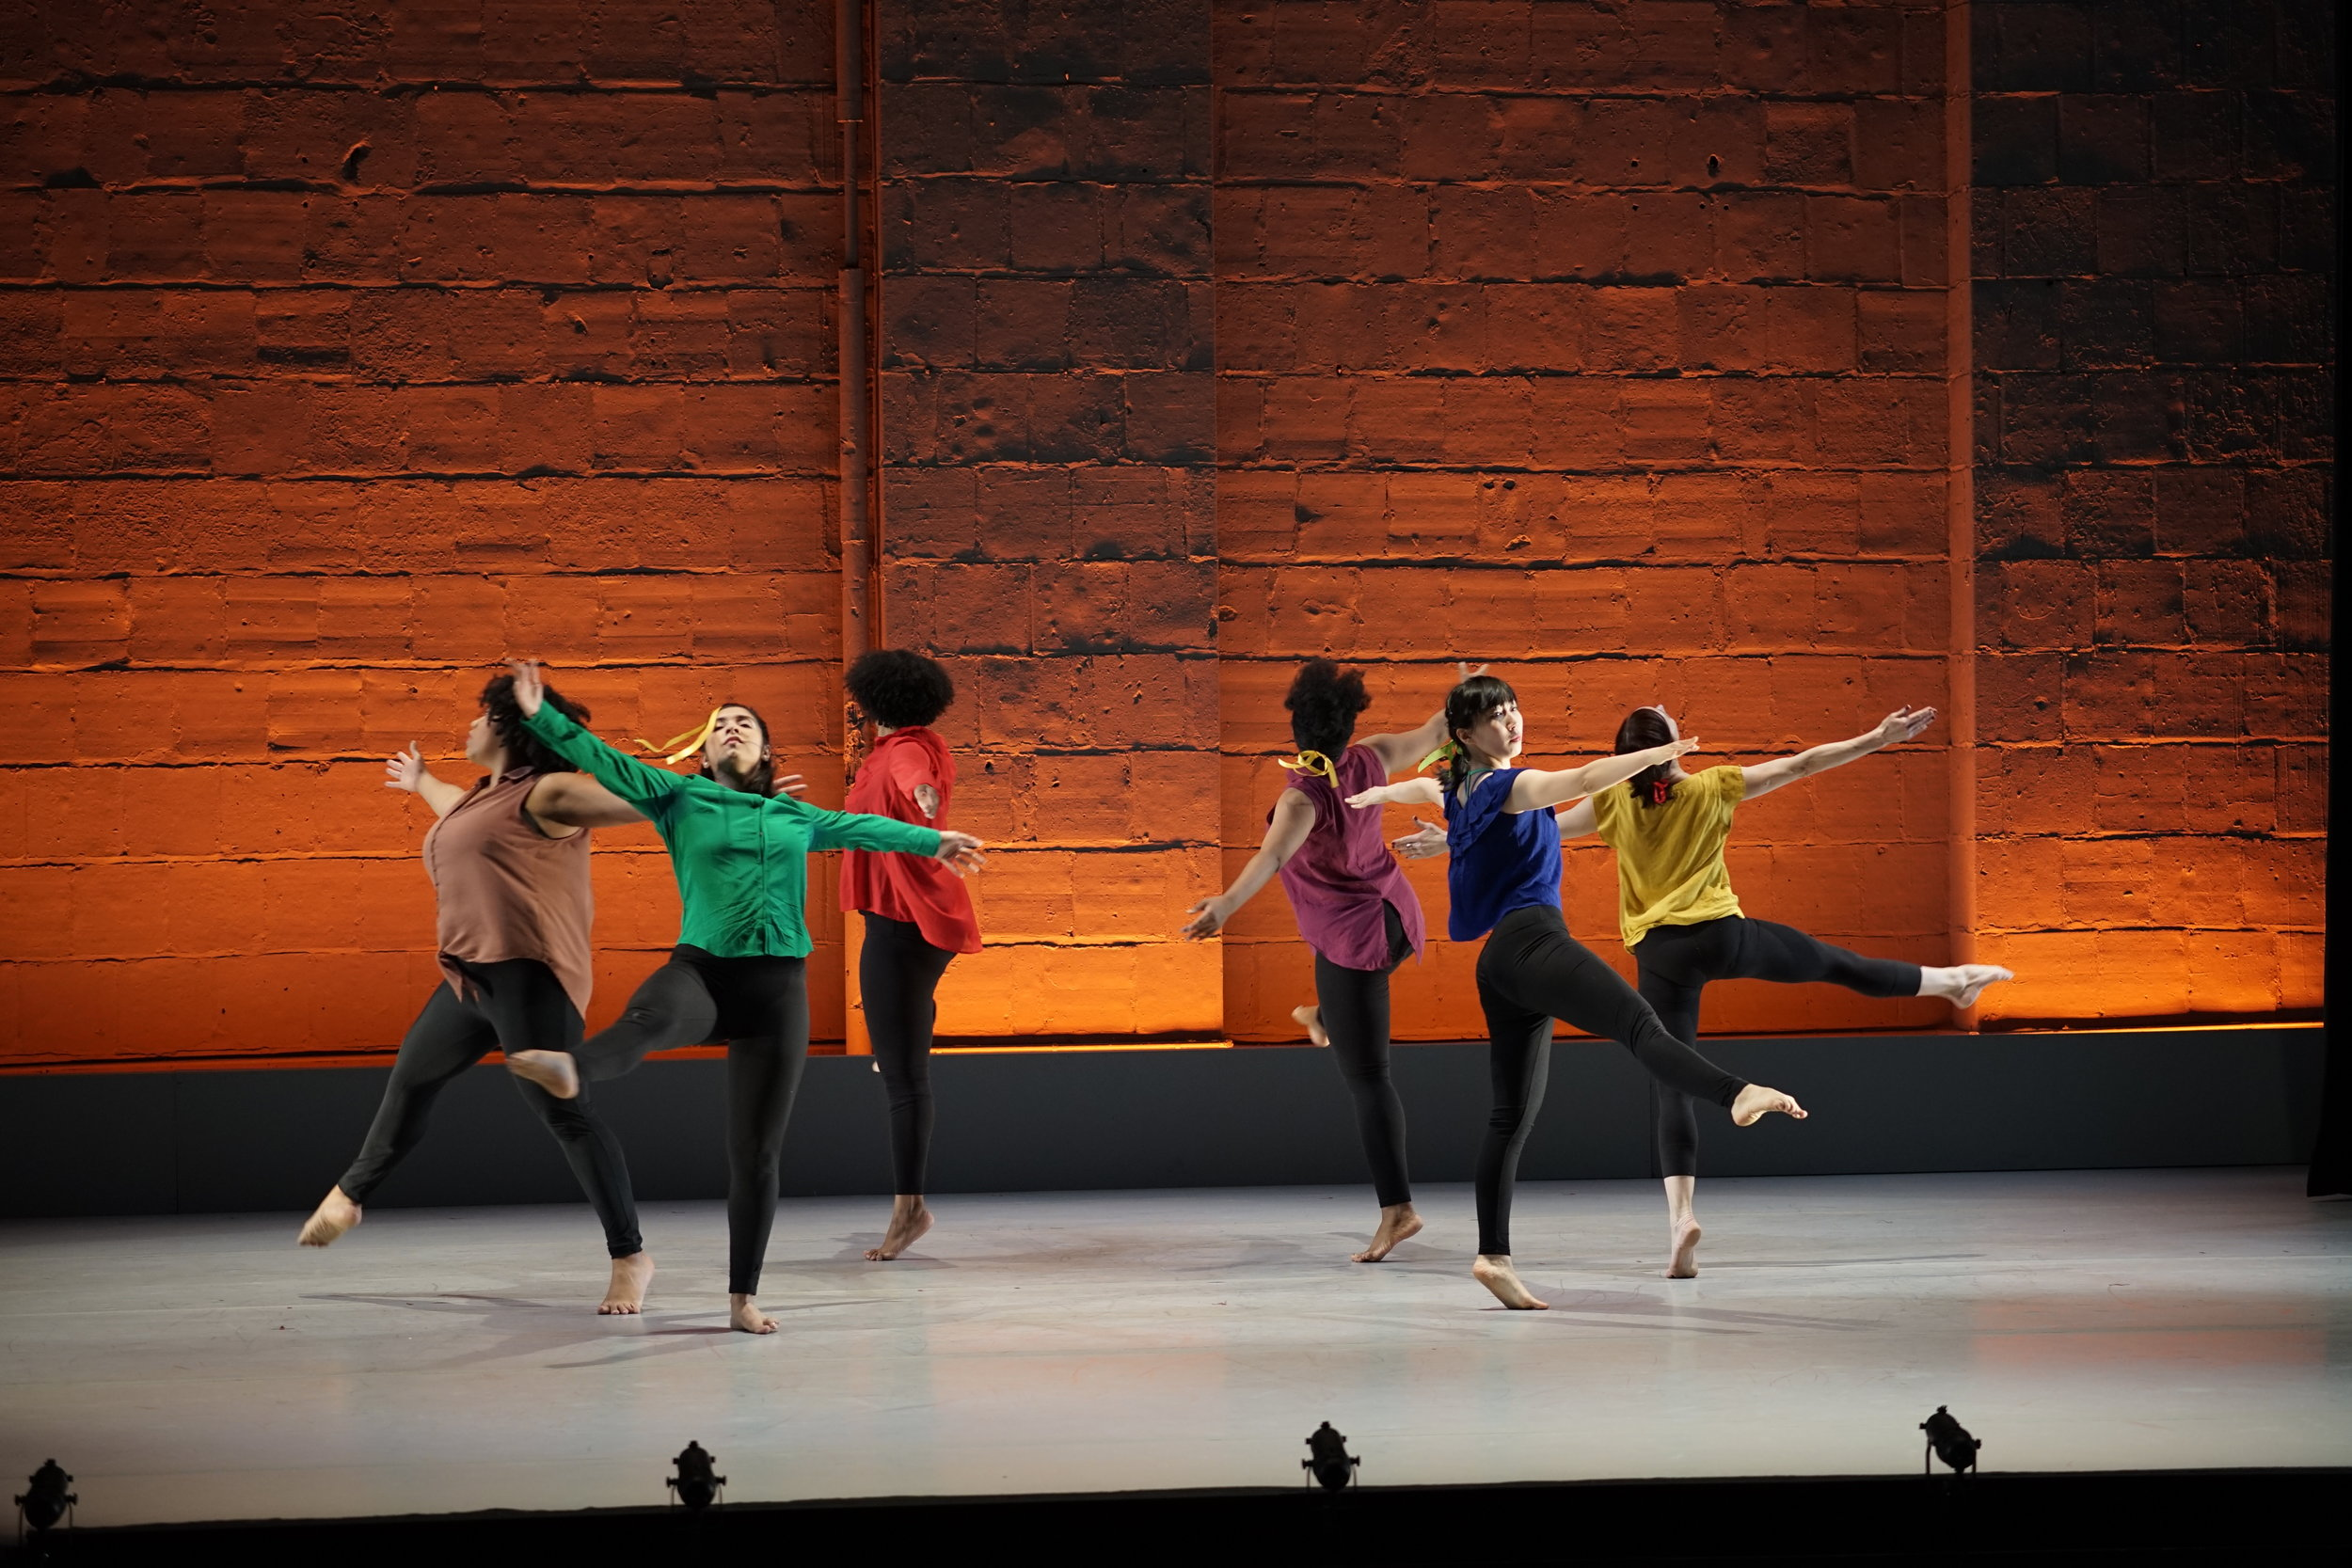 Dancers L to R: Nyasia Fraser, Jacqueline Ledesma, Jai Marie Williams, Trashina Arwanda Conner, Takako Amitani, Melanie Coats; Photo by Aman Cheung, 2019